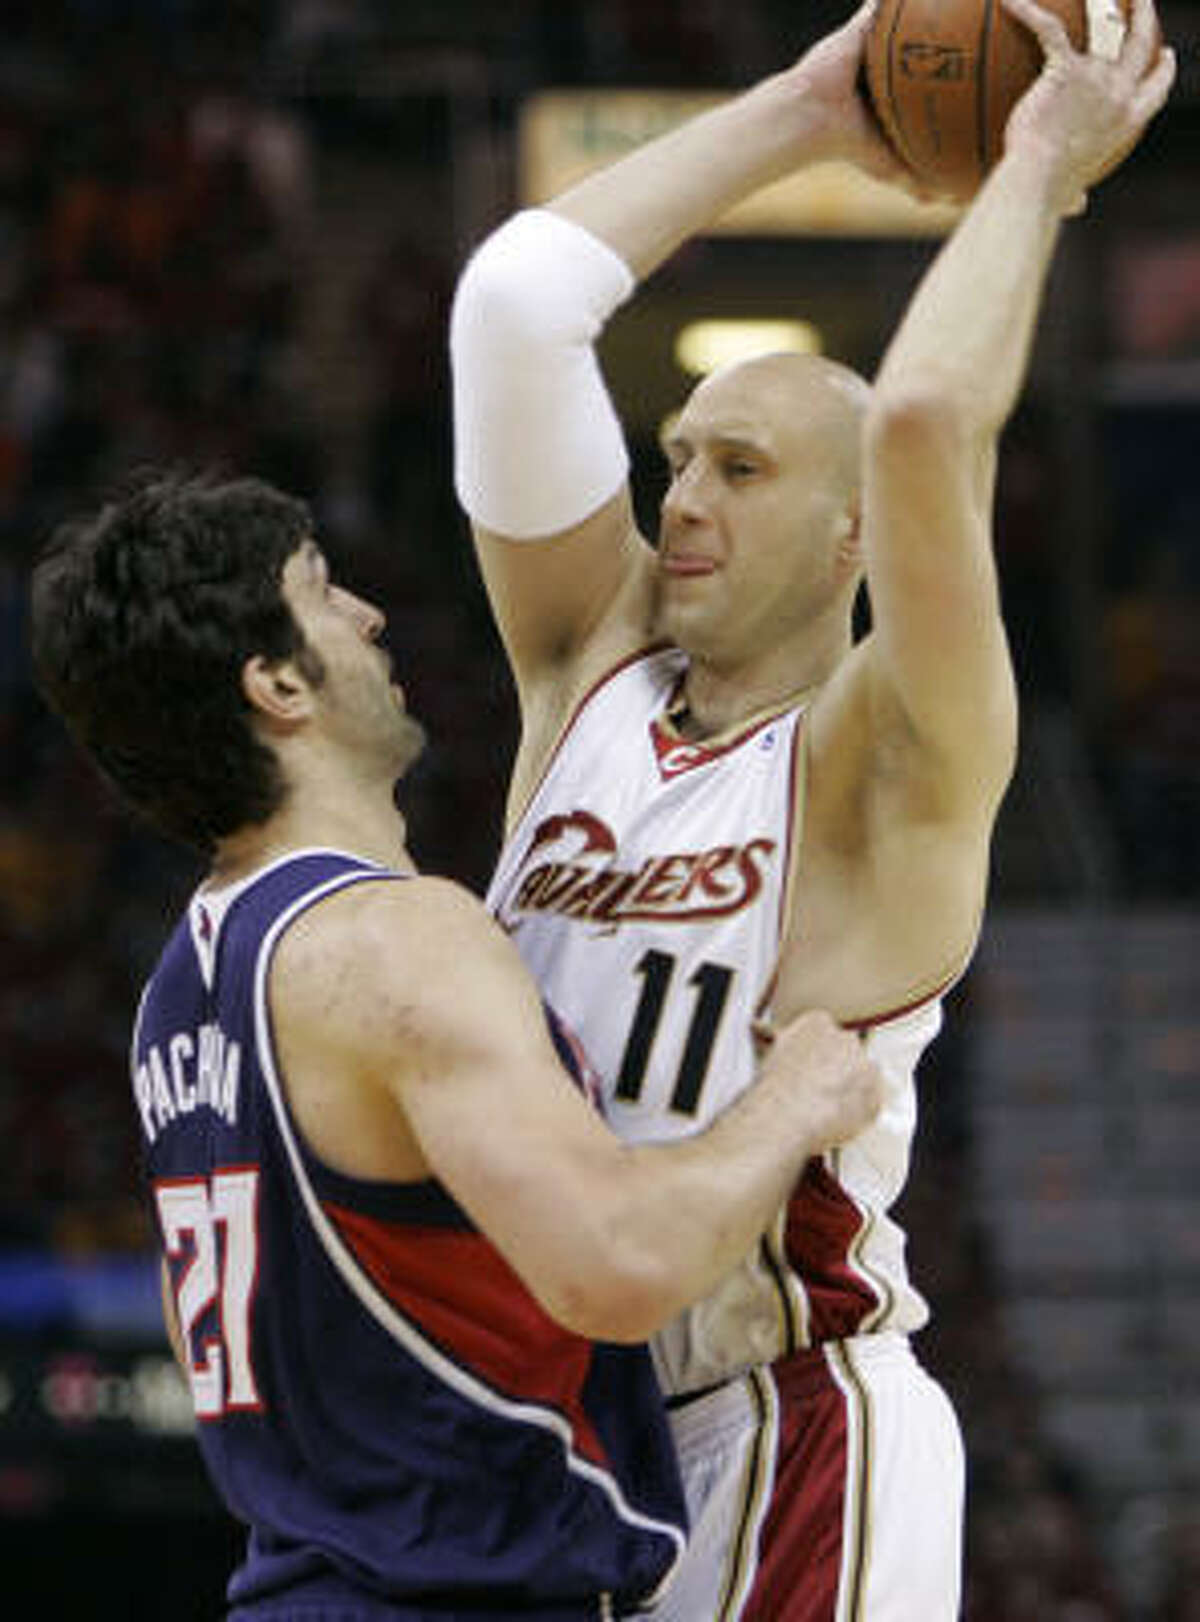 Atlanta's Zaza Pachulia, left, plays tight defense on Cleveland's Zydrunas Ilgauskas in the first quarter of Game 2 of the Eastern Conference semifinals Thursday in Cleveland.